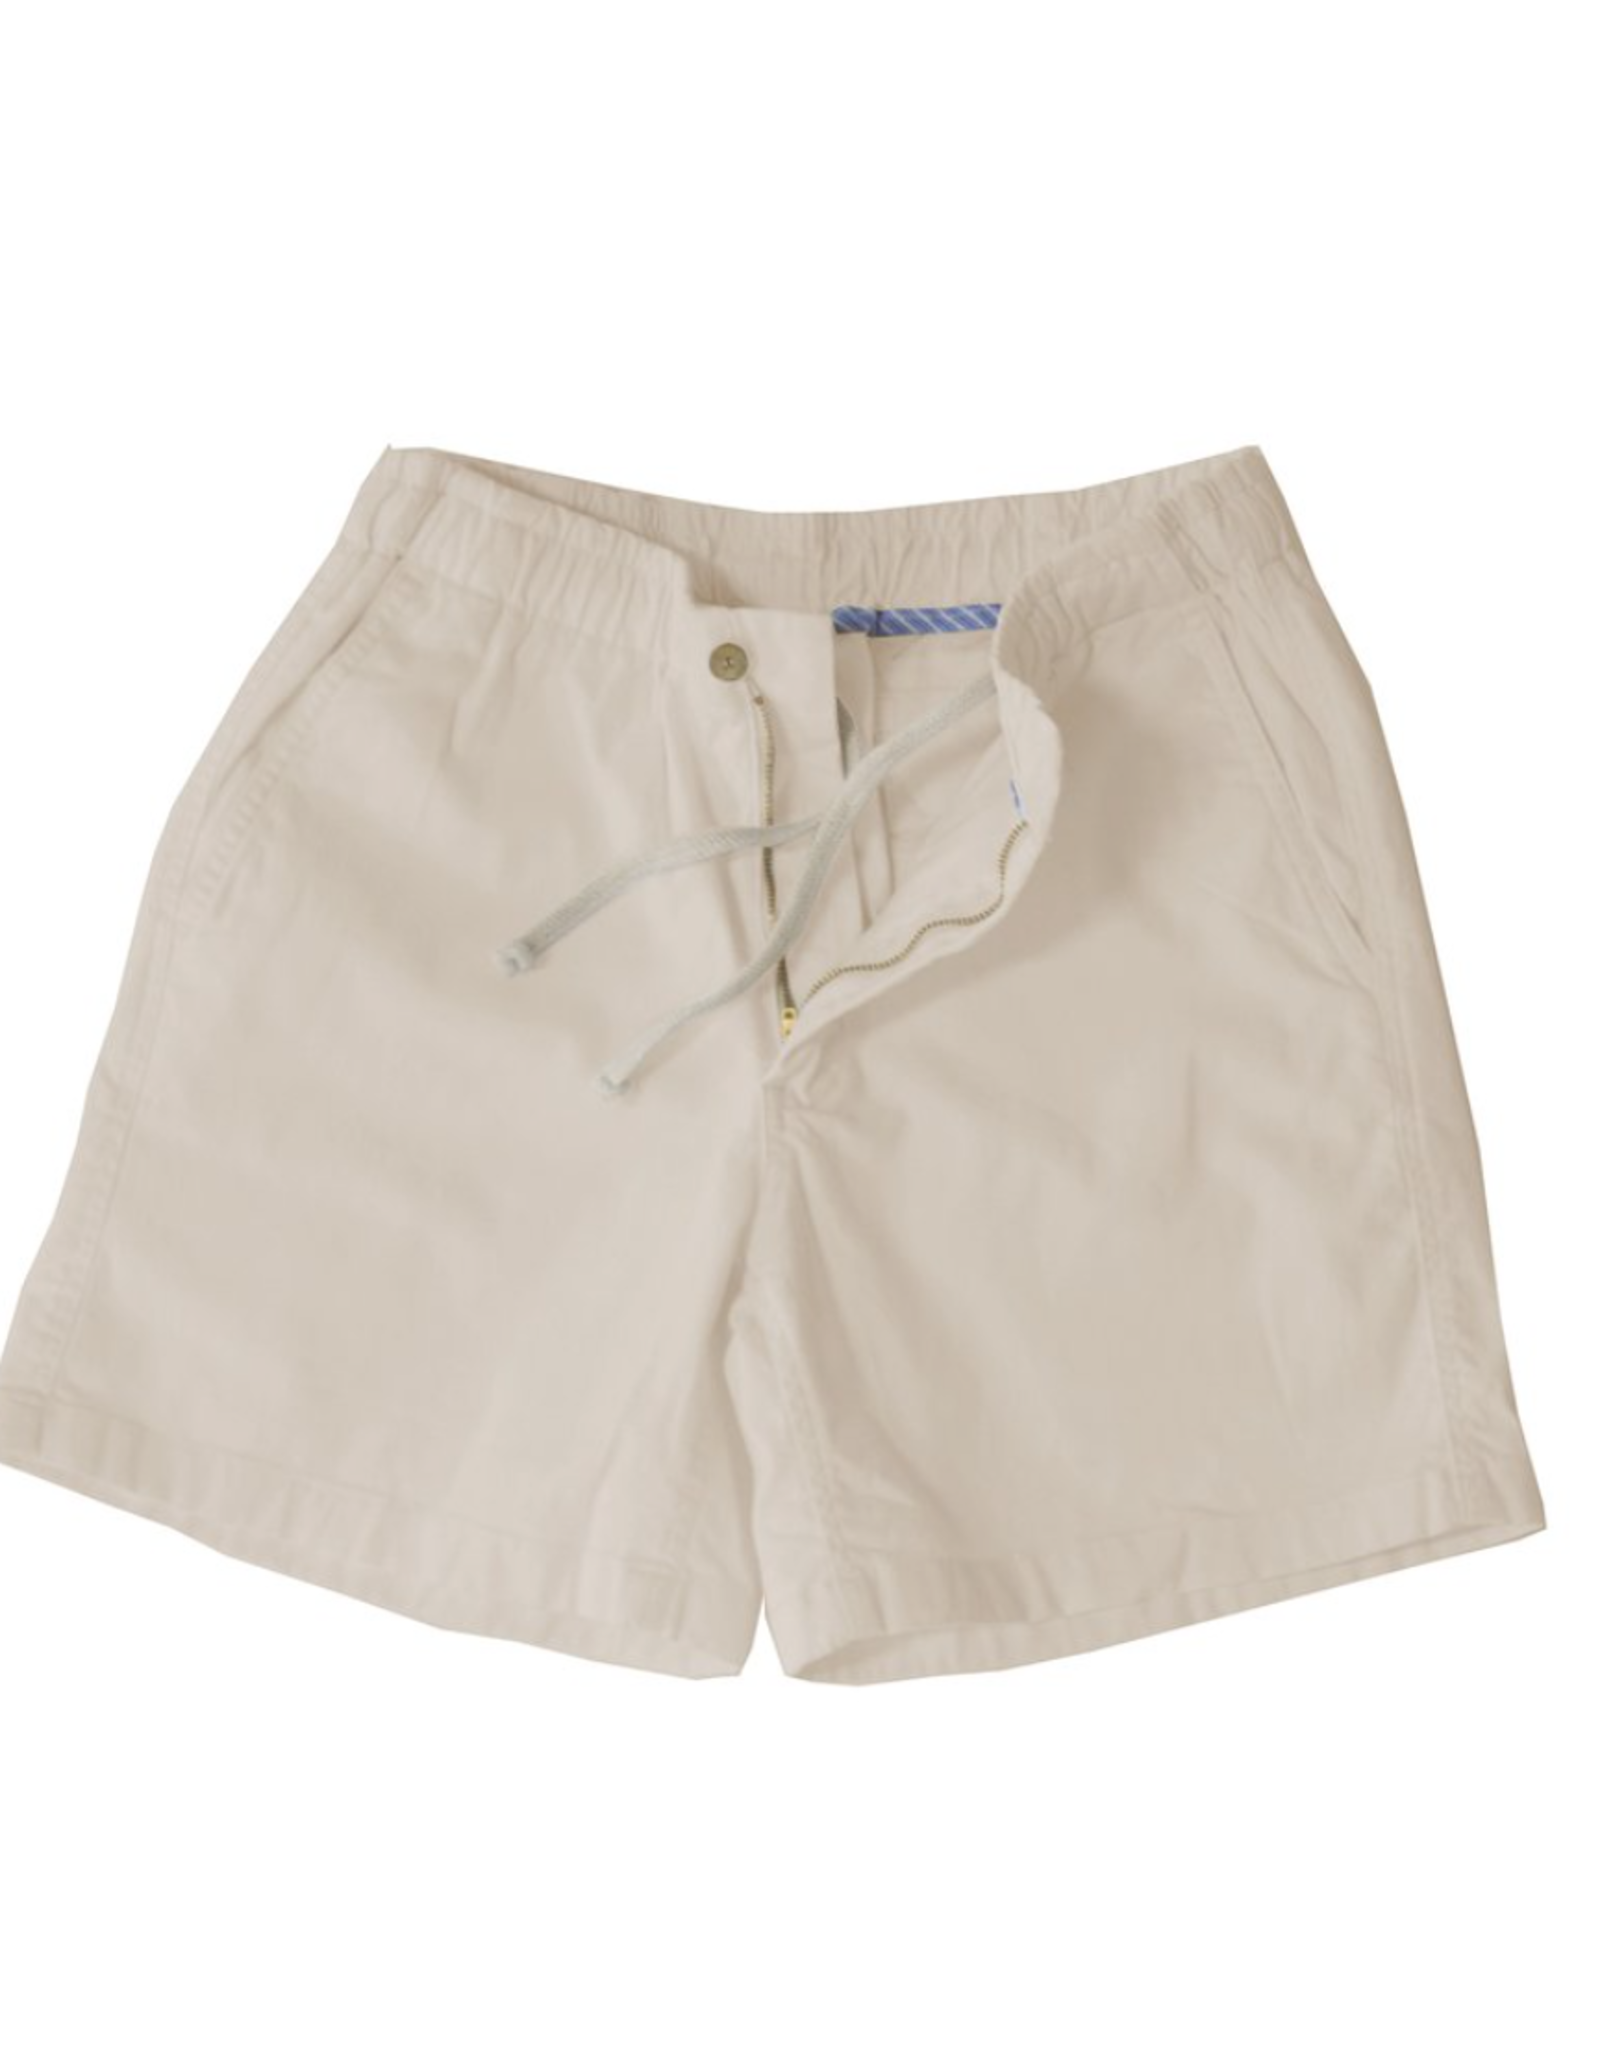 Properly Tied Properly Tied Lil Ducklings Cruiser Short